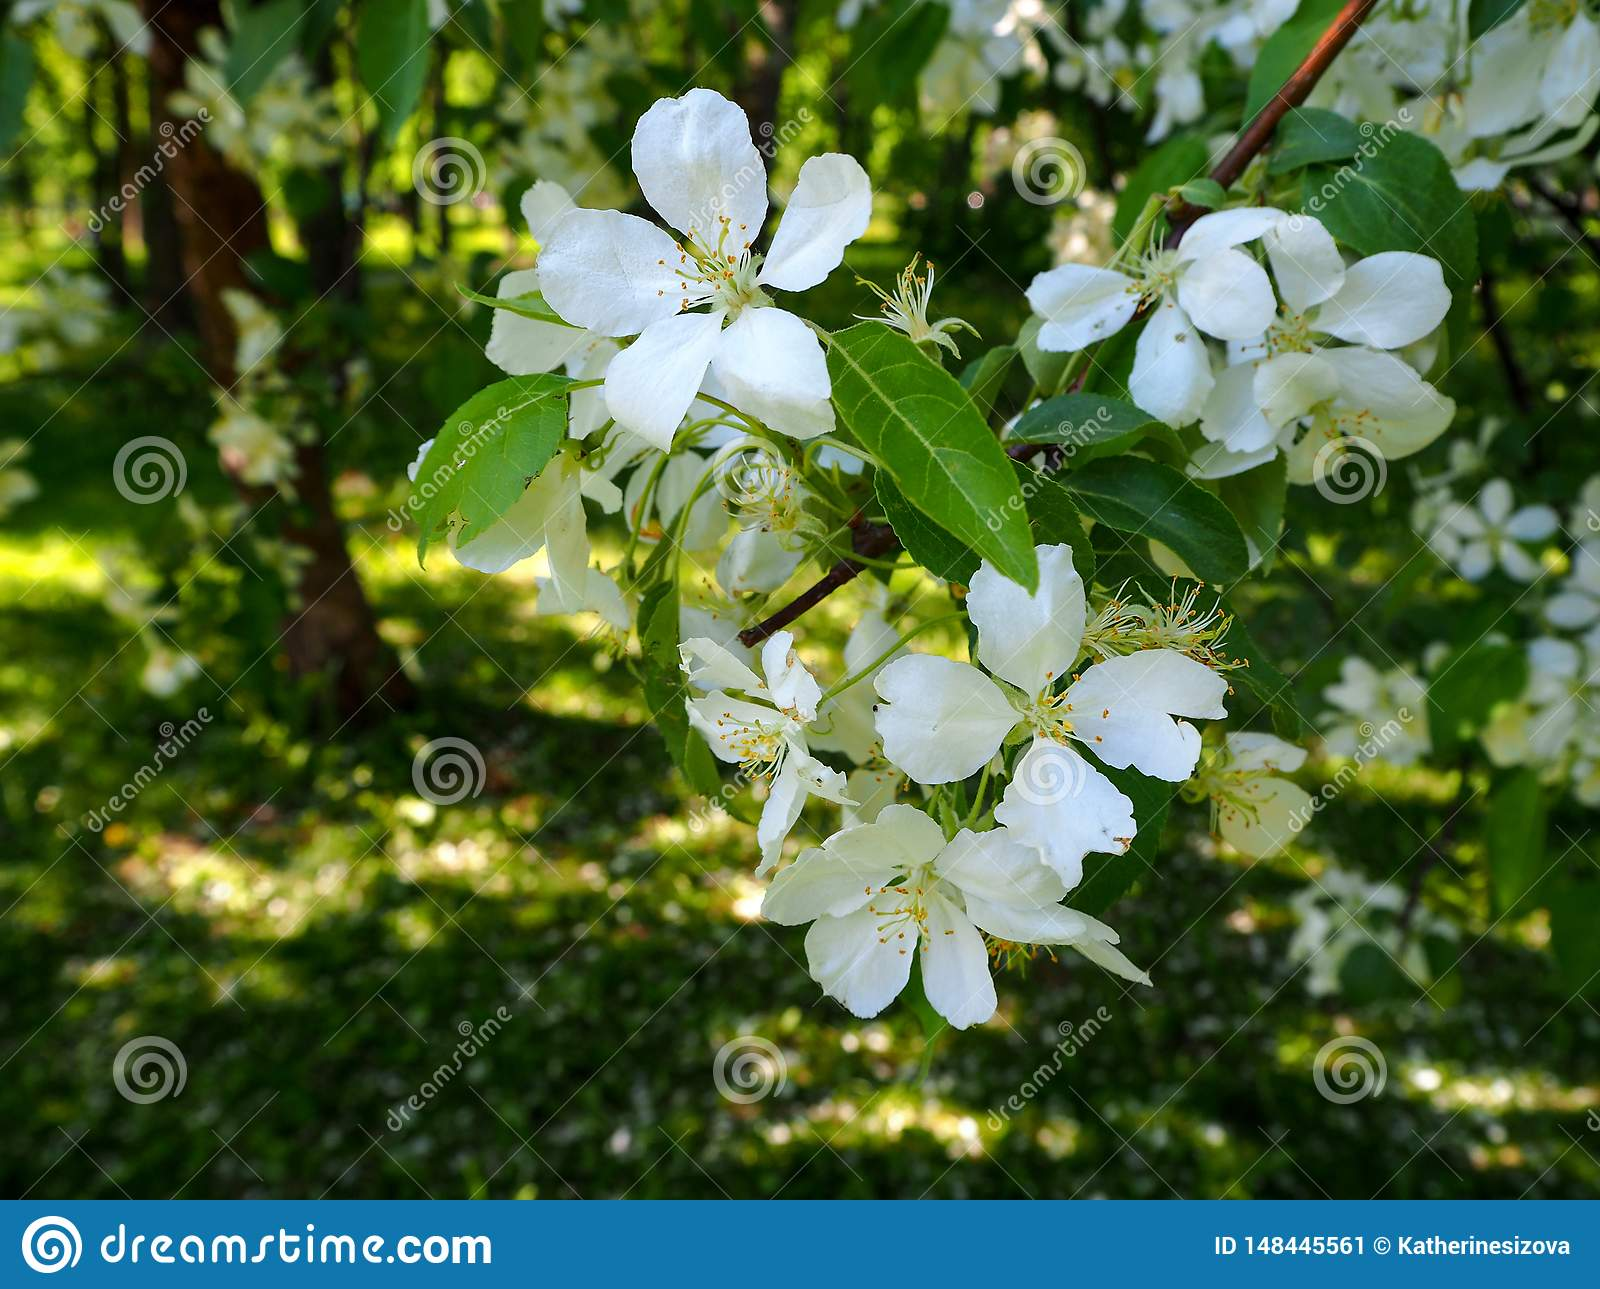 Branch of white blooming apple tree